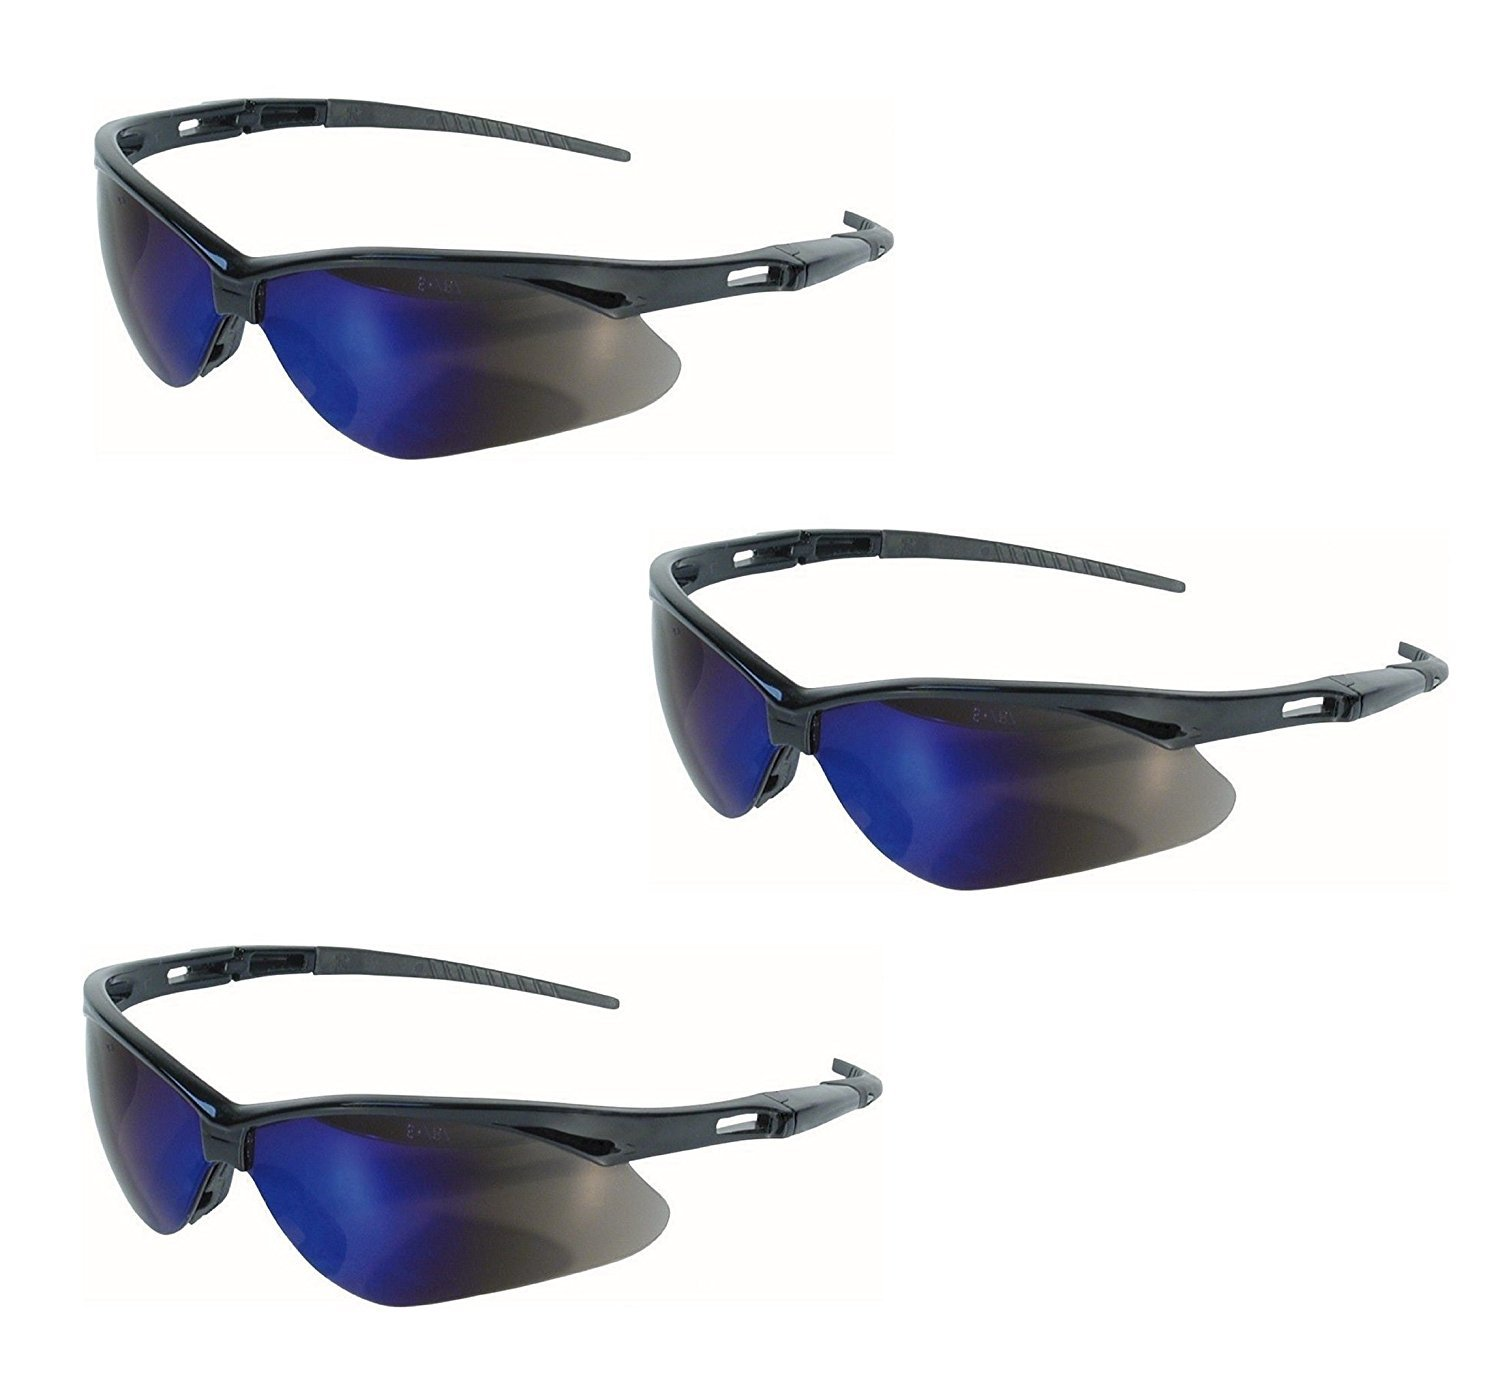 Jackson Safety V30 14481 Nemesis Safety Glasses 3000358 (3 Pair) (Black Frame with Blue Mirror Lens) by Jackson Safety